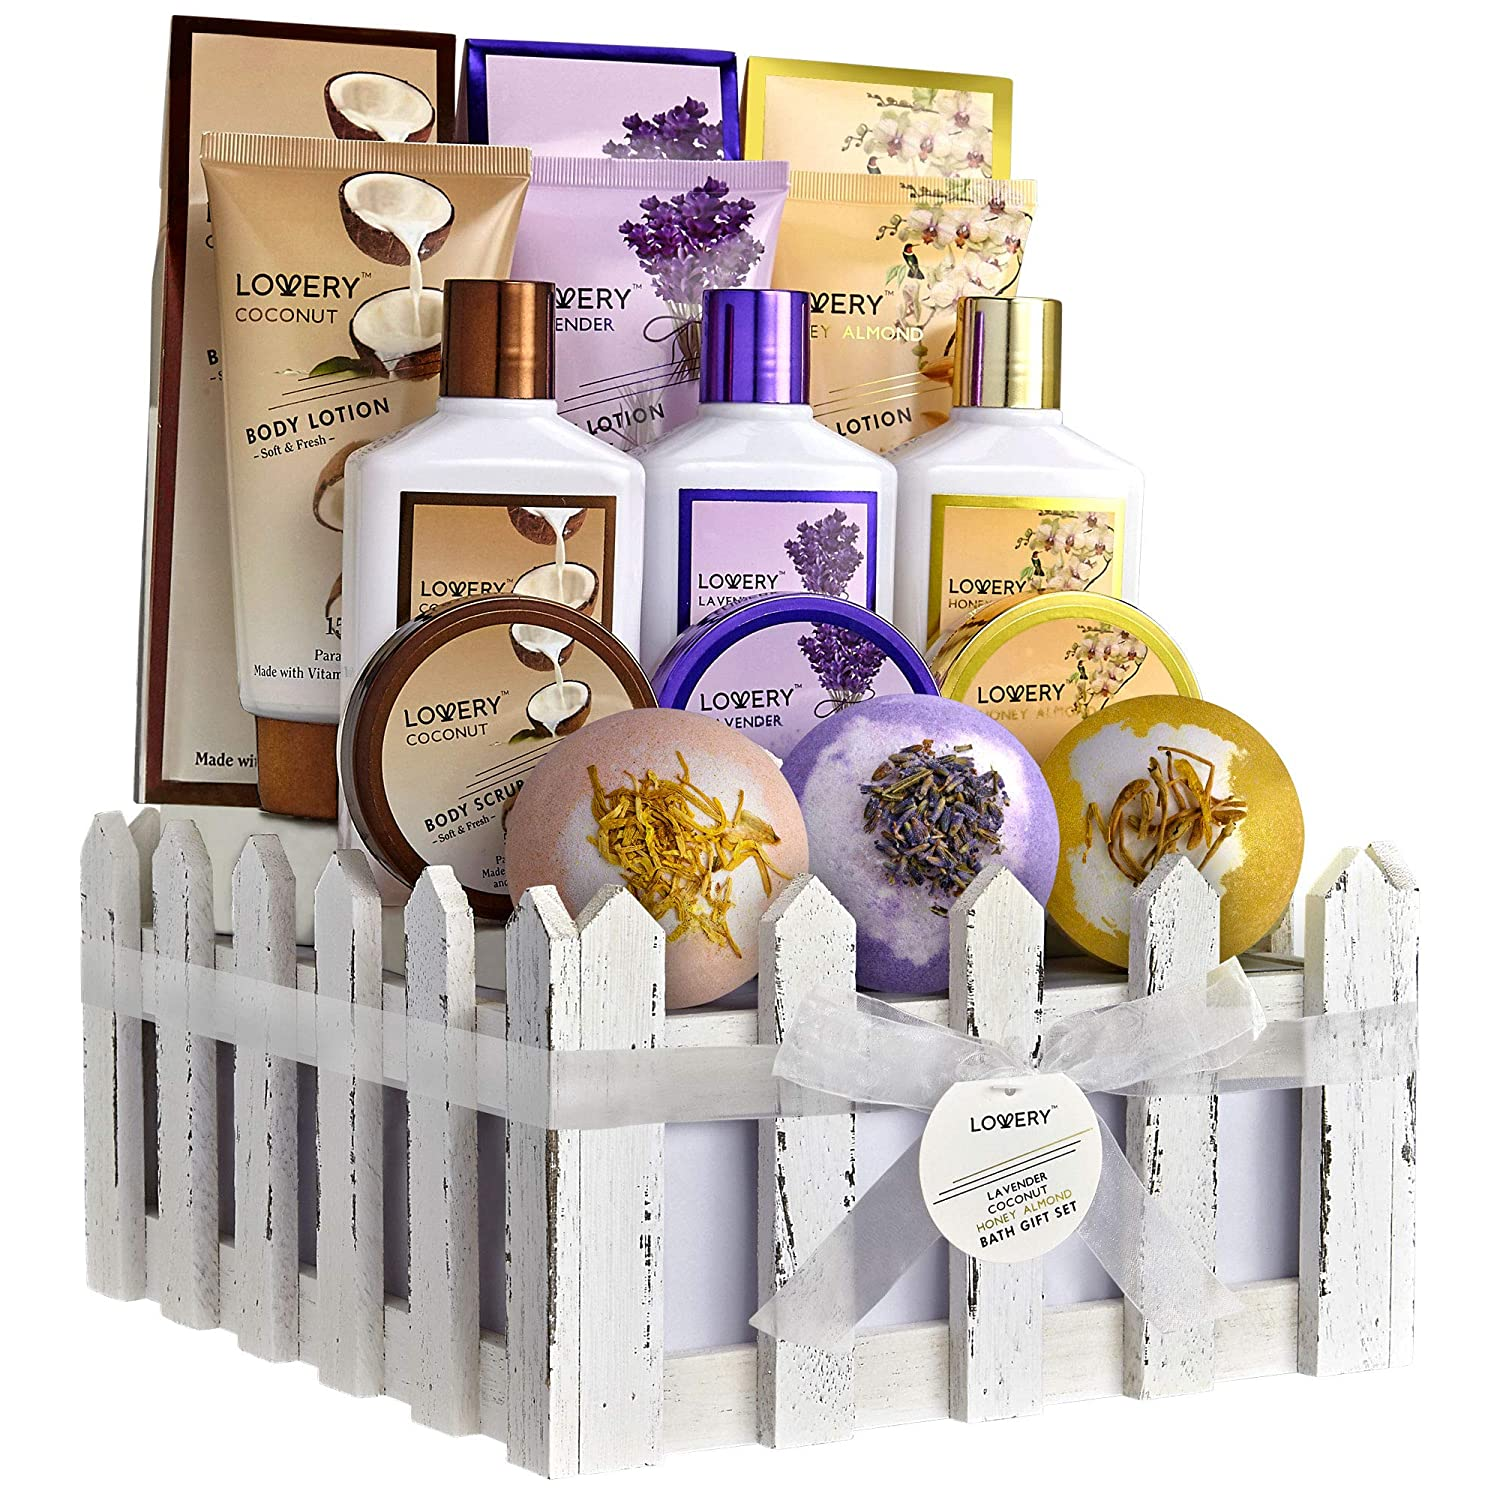 Home Spa Gift Baskets For Women & Men, 16 Piece Set of Coconut, Lavender Jasmine & Honey Almond Scent, Includes Lotions, Salts, Bubble Baths, Body Scrub & Large Bath Bombs, Birthday & Holiday Gifts